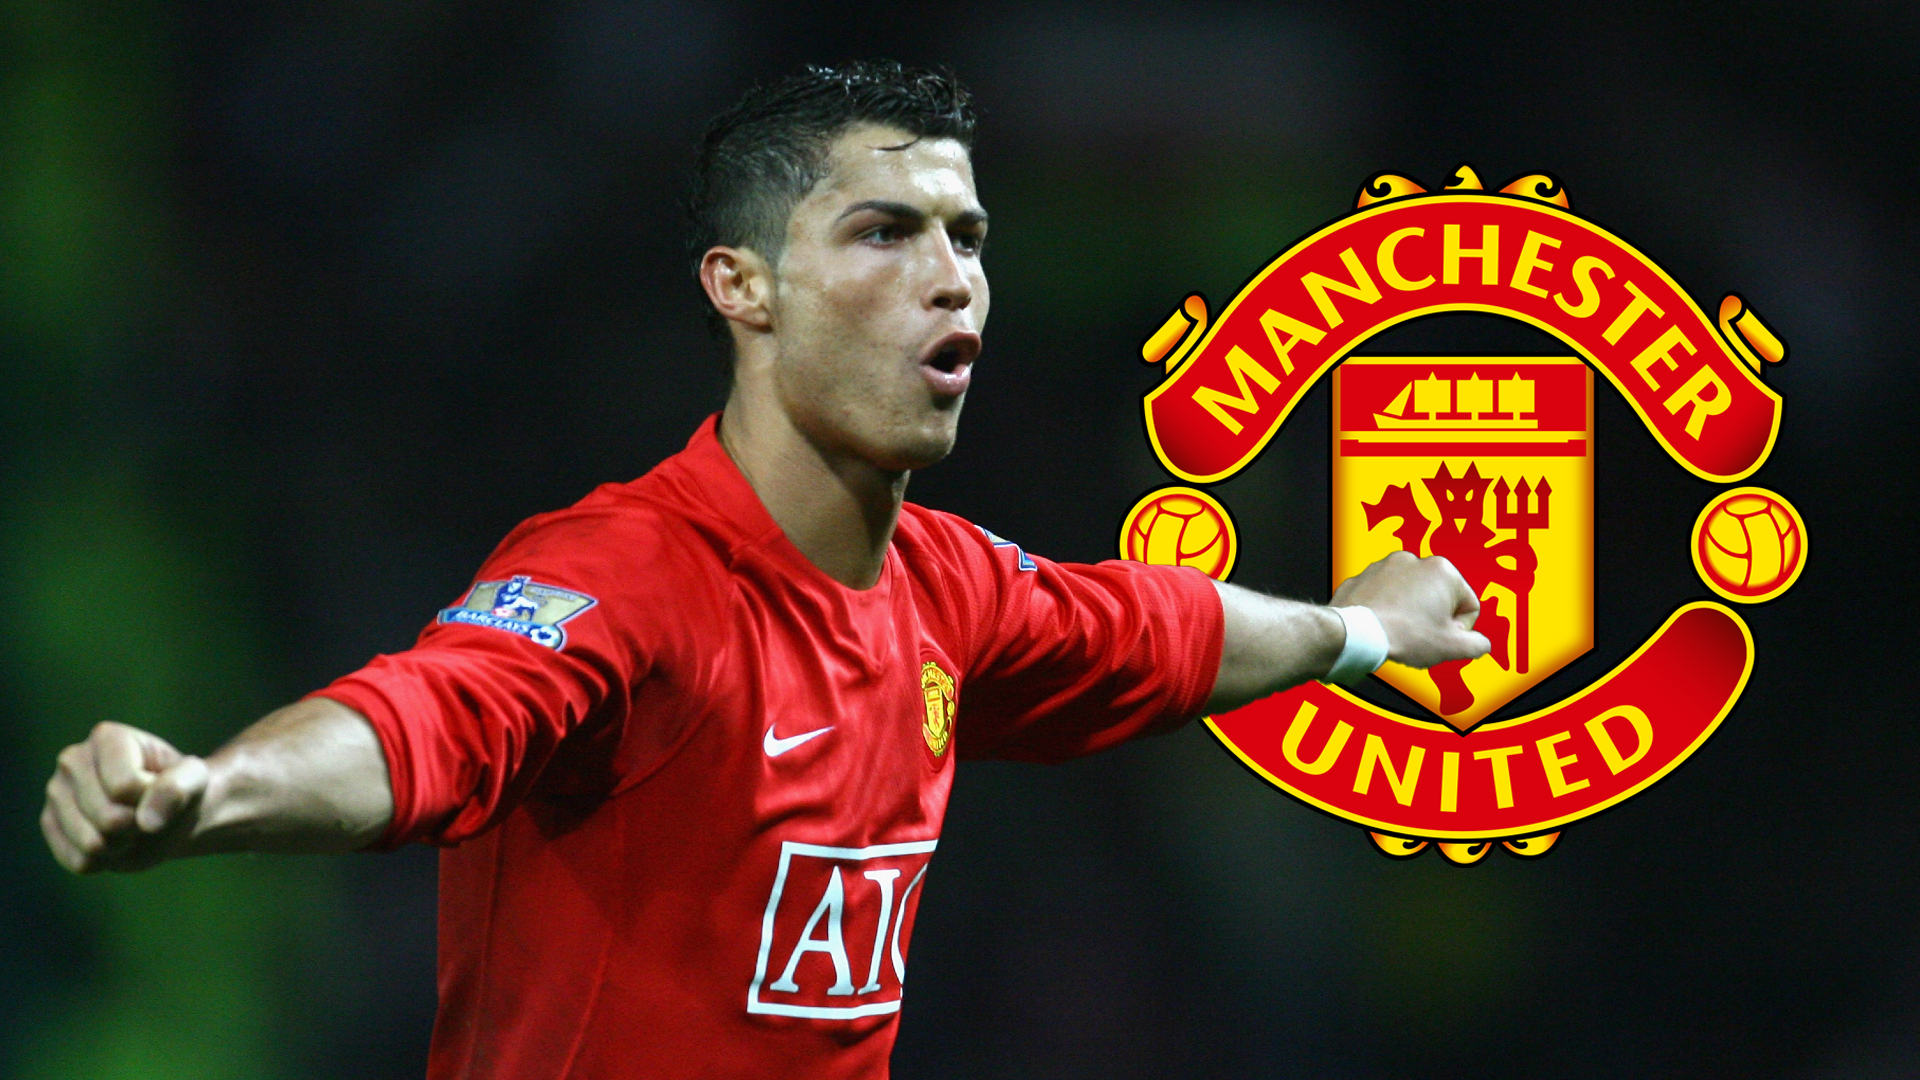 Cristiano Ronaldo's Man Utd debut: When it is and how to watch